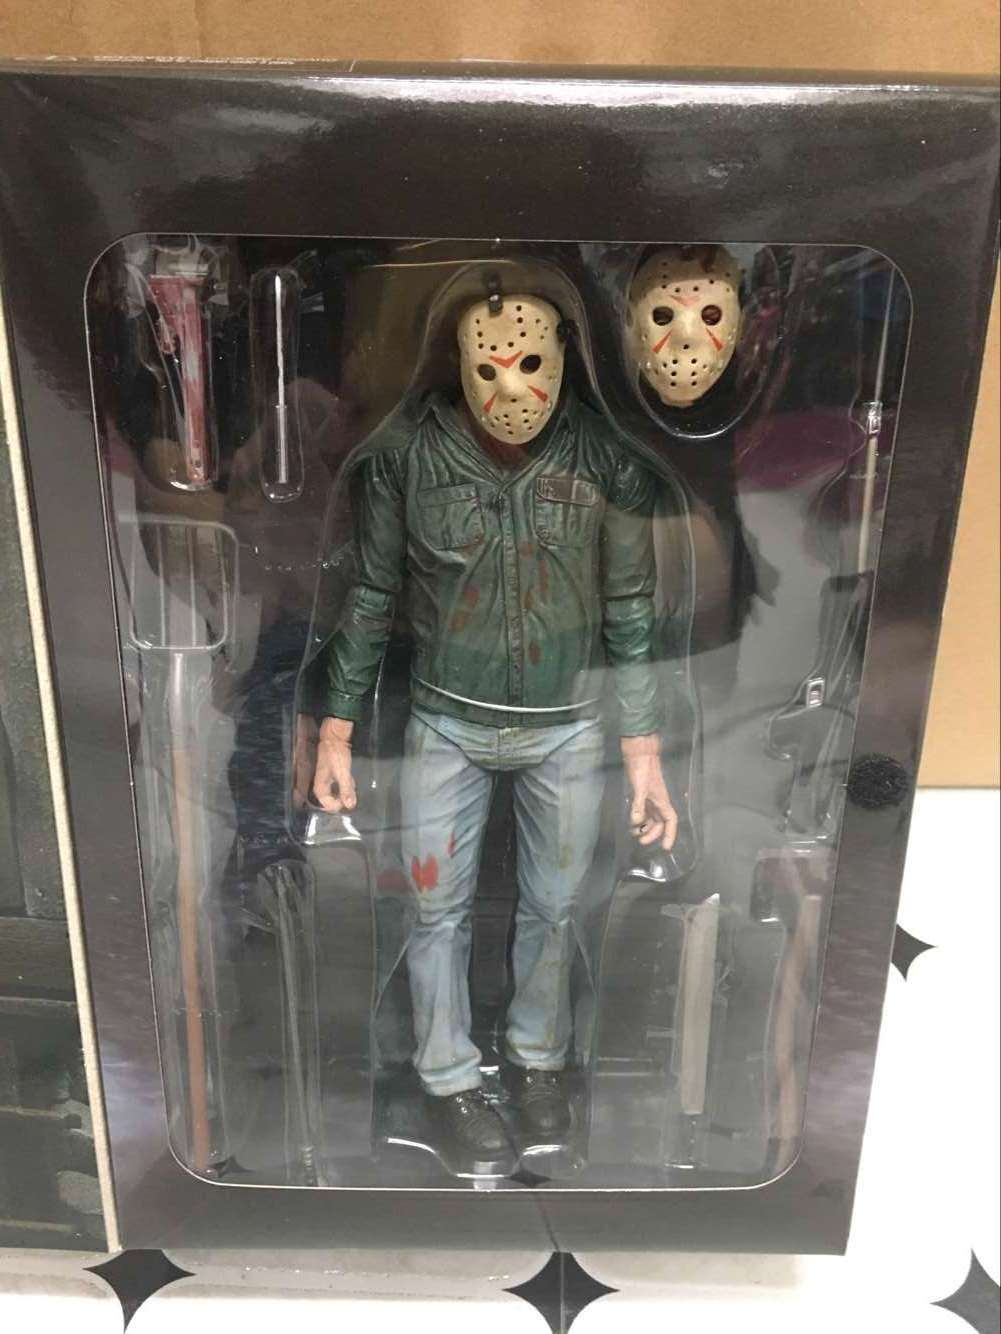 NECA A Nightmare on Elm Street 3 Dream Warriors PVC Action Figure Collectible Model Toy Friday the 13th Part 3 3D Jason Voorhees nikko машина nissan skyline gtr r34 street warriors 1 10 901584 в перми